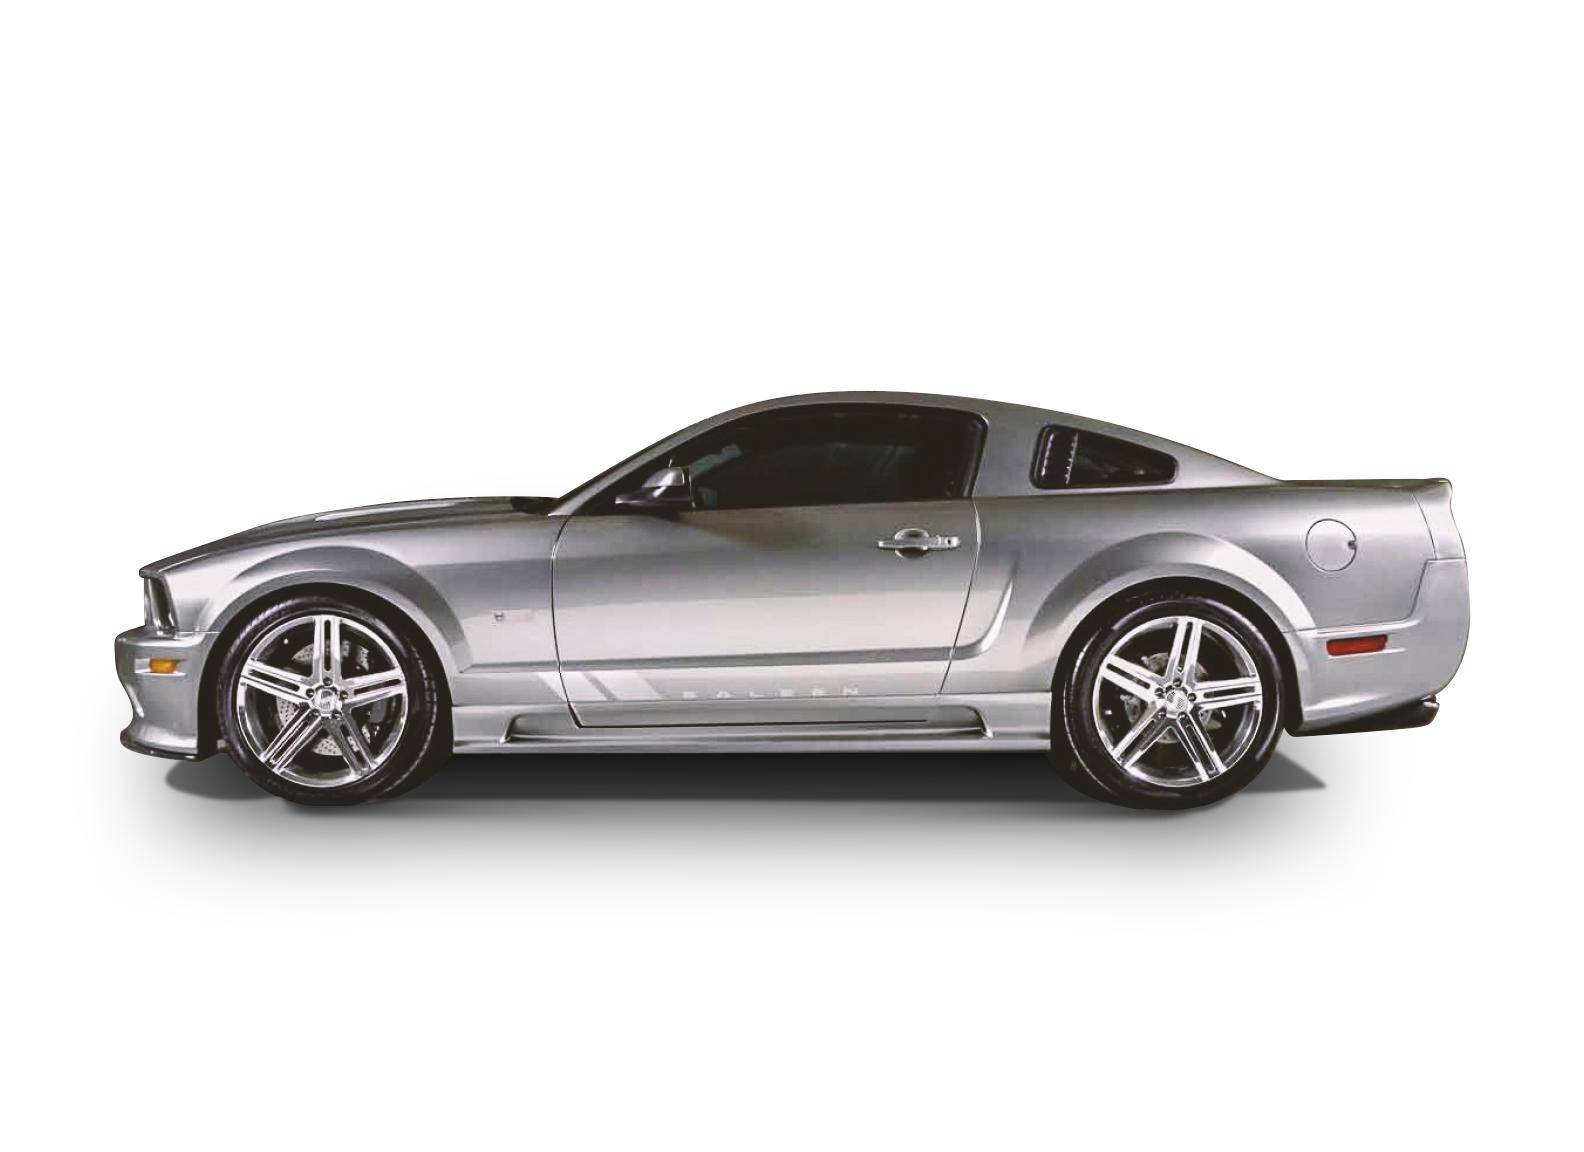 Ford Mustang 2005-2009 Sallen Style 7 Piece Polyurethane Full Body Kit